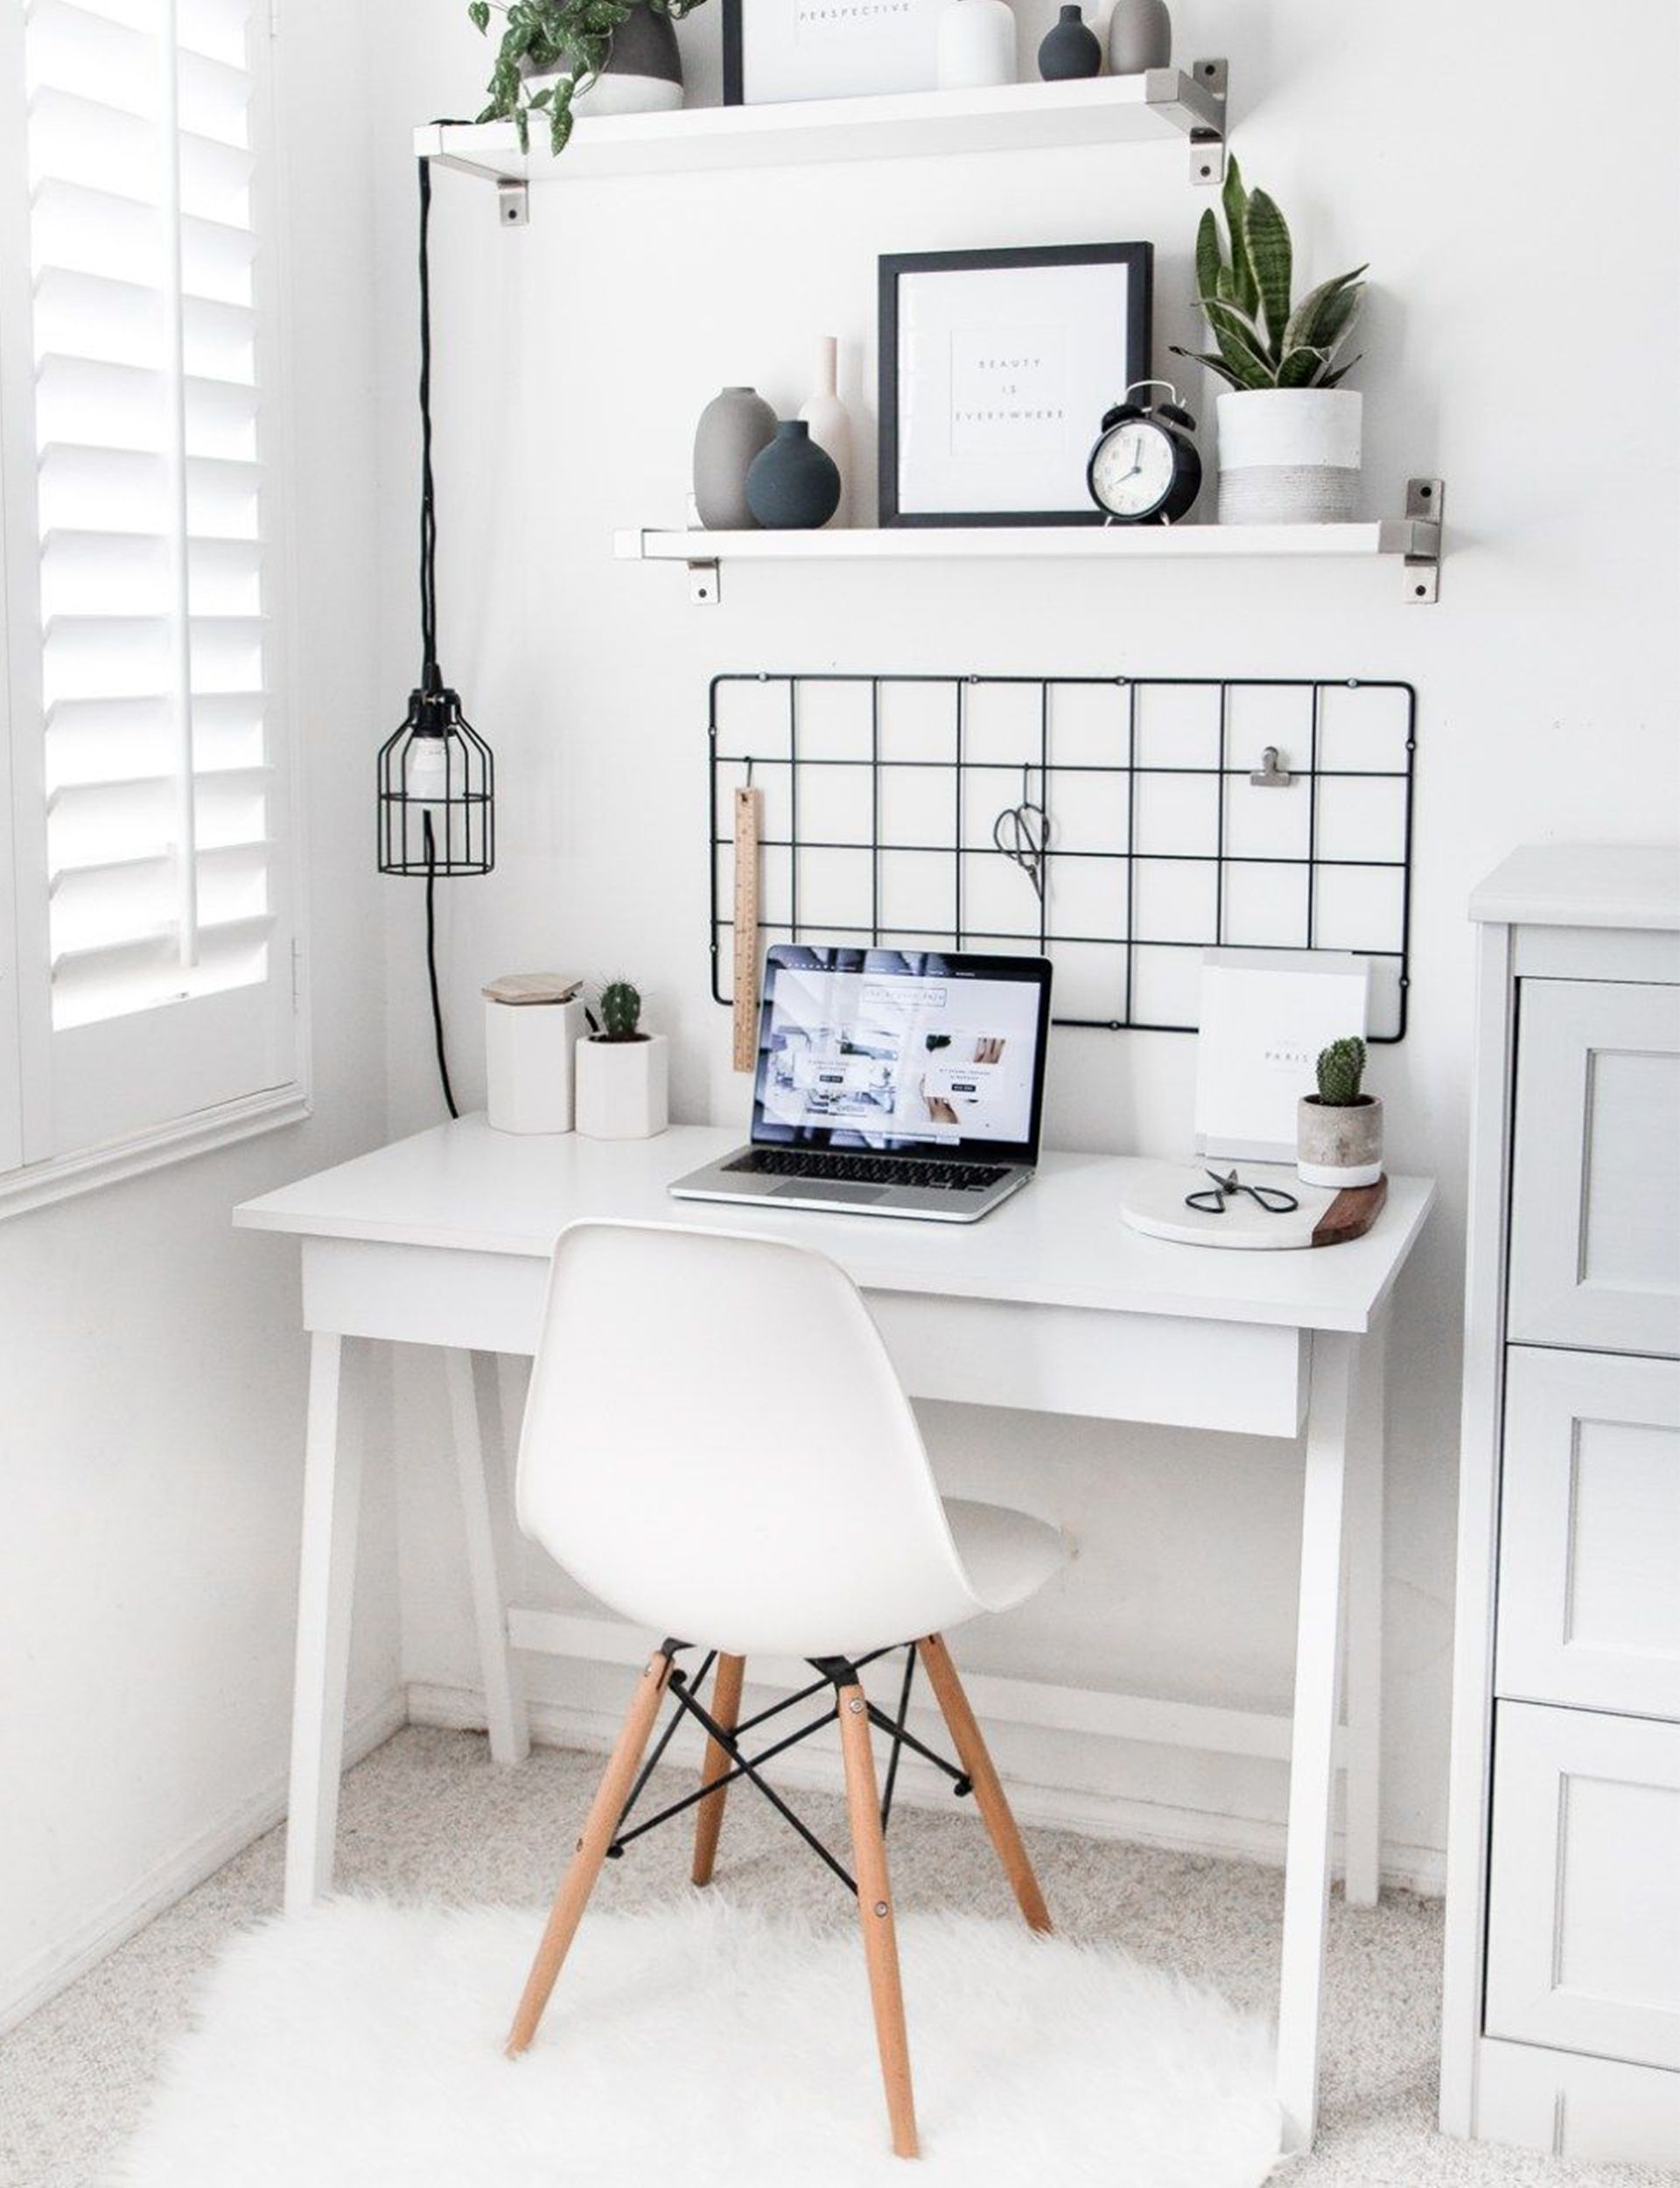 30 Minimalist Living Room Ideas Inspiration To Make The Most Of Your Space: 7 Stylish Ways To Make The Most Of A Small Office Space